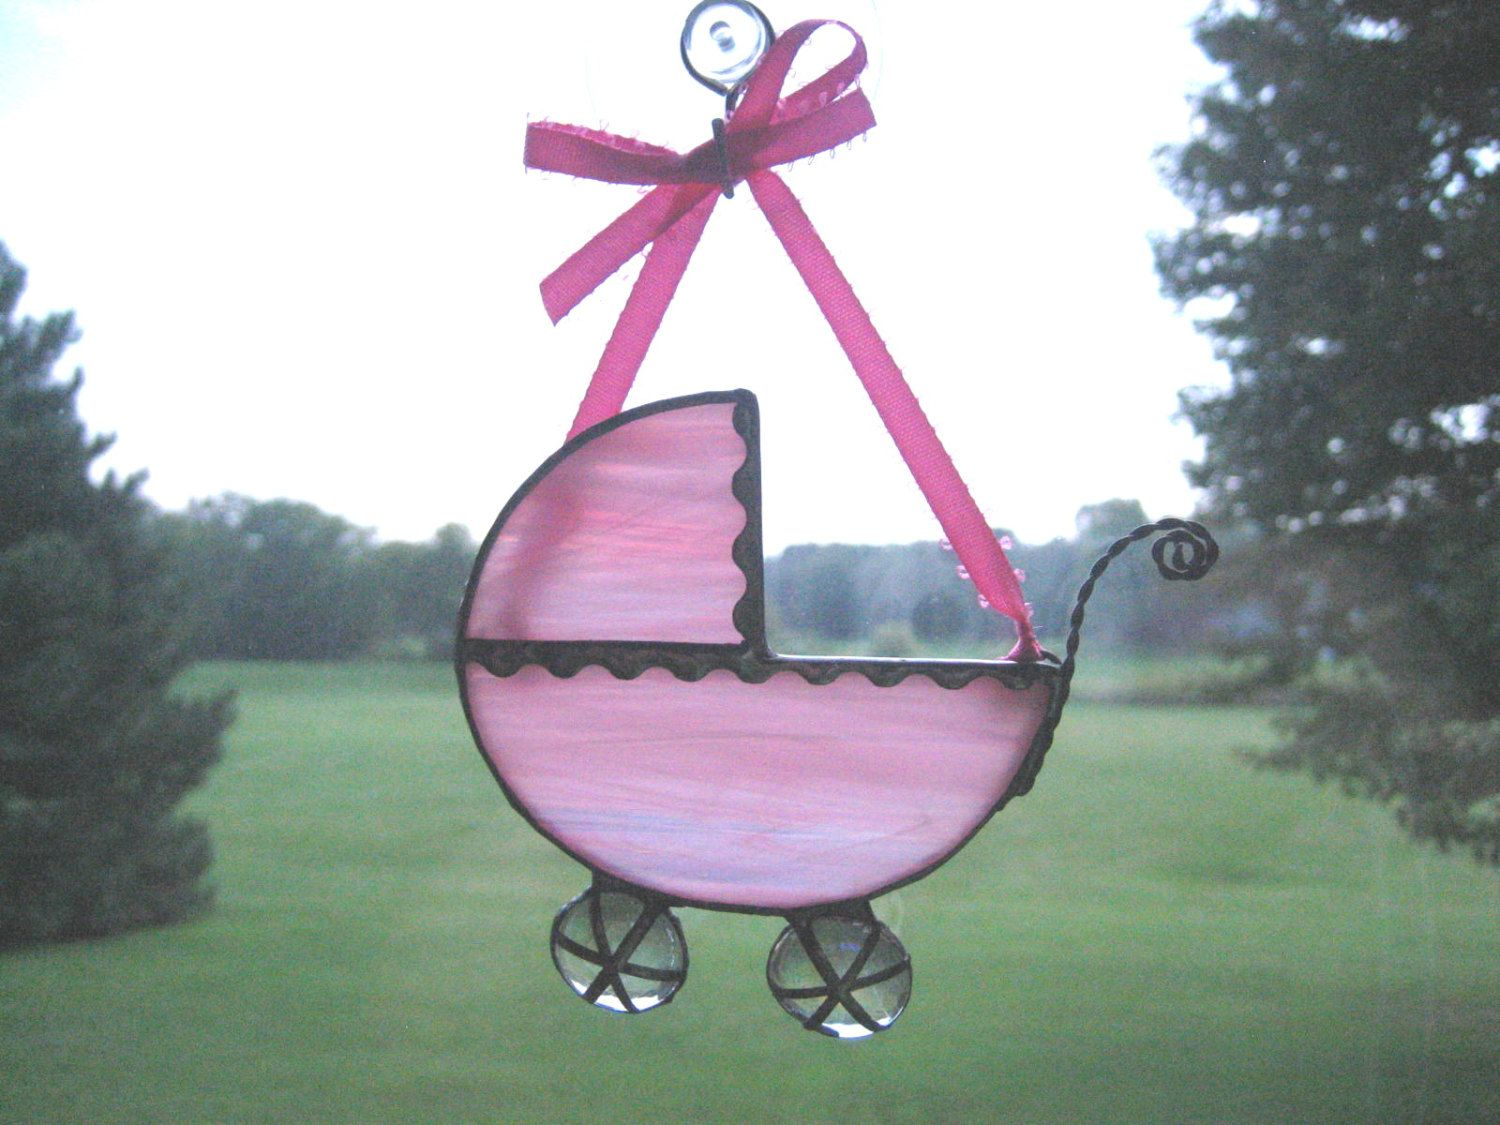 Tiffanys Babys First Christmas Ornament 2020 2019 Baby's First Christmas Ornament, Soft Pink Baby Carriage